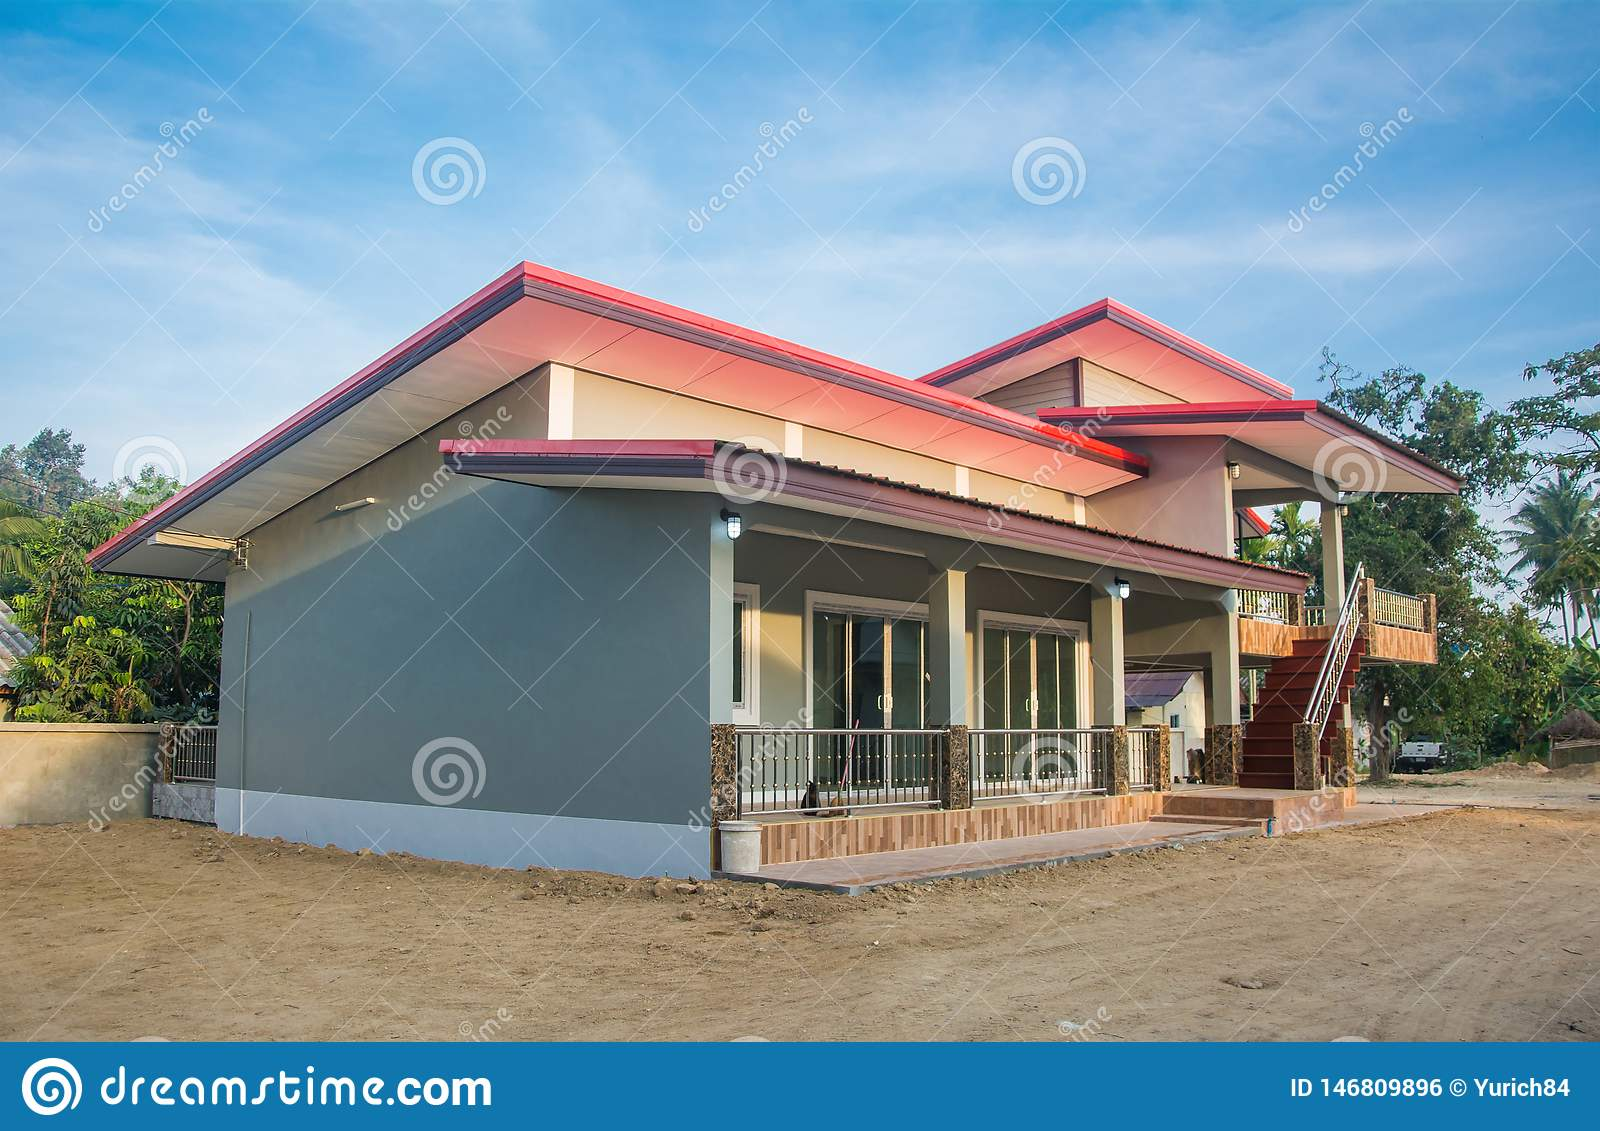 1 836 Modern Bungalow Photos Free Royalty Free Stock Photos From Dreamstime